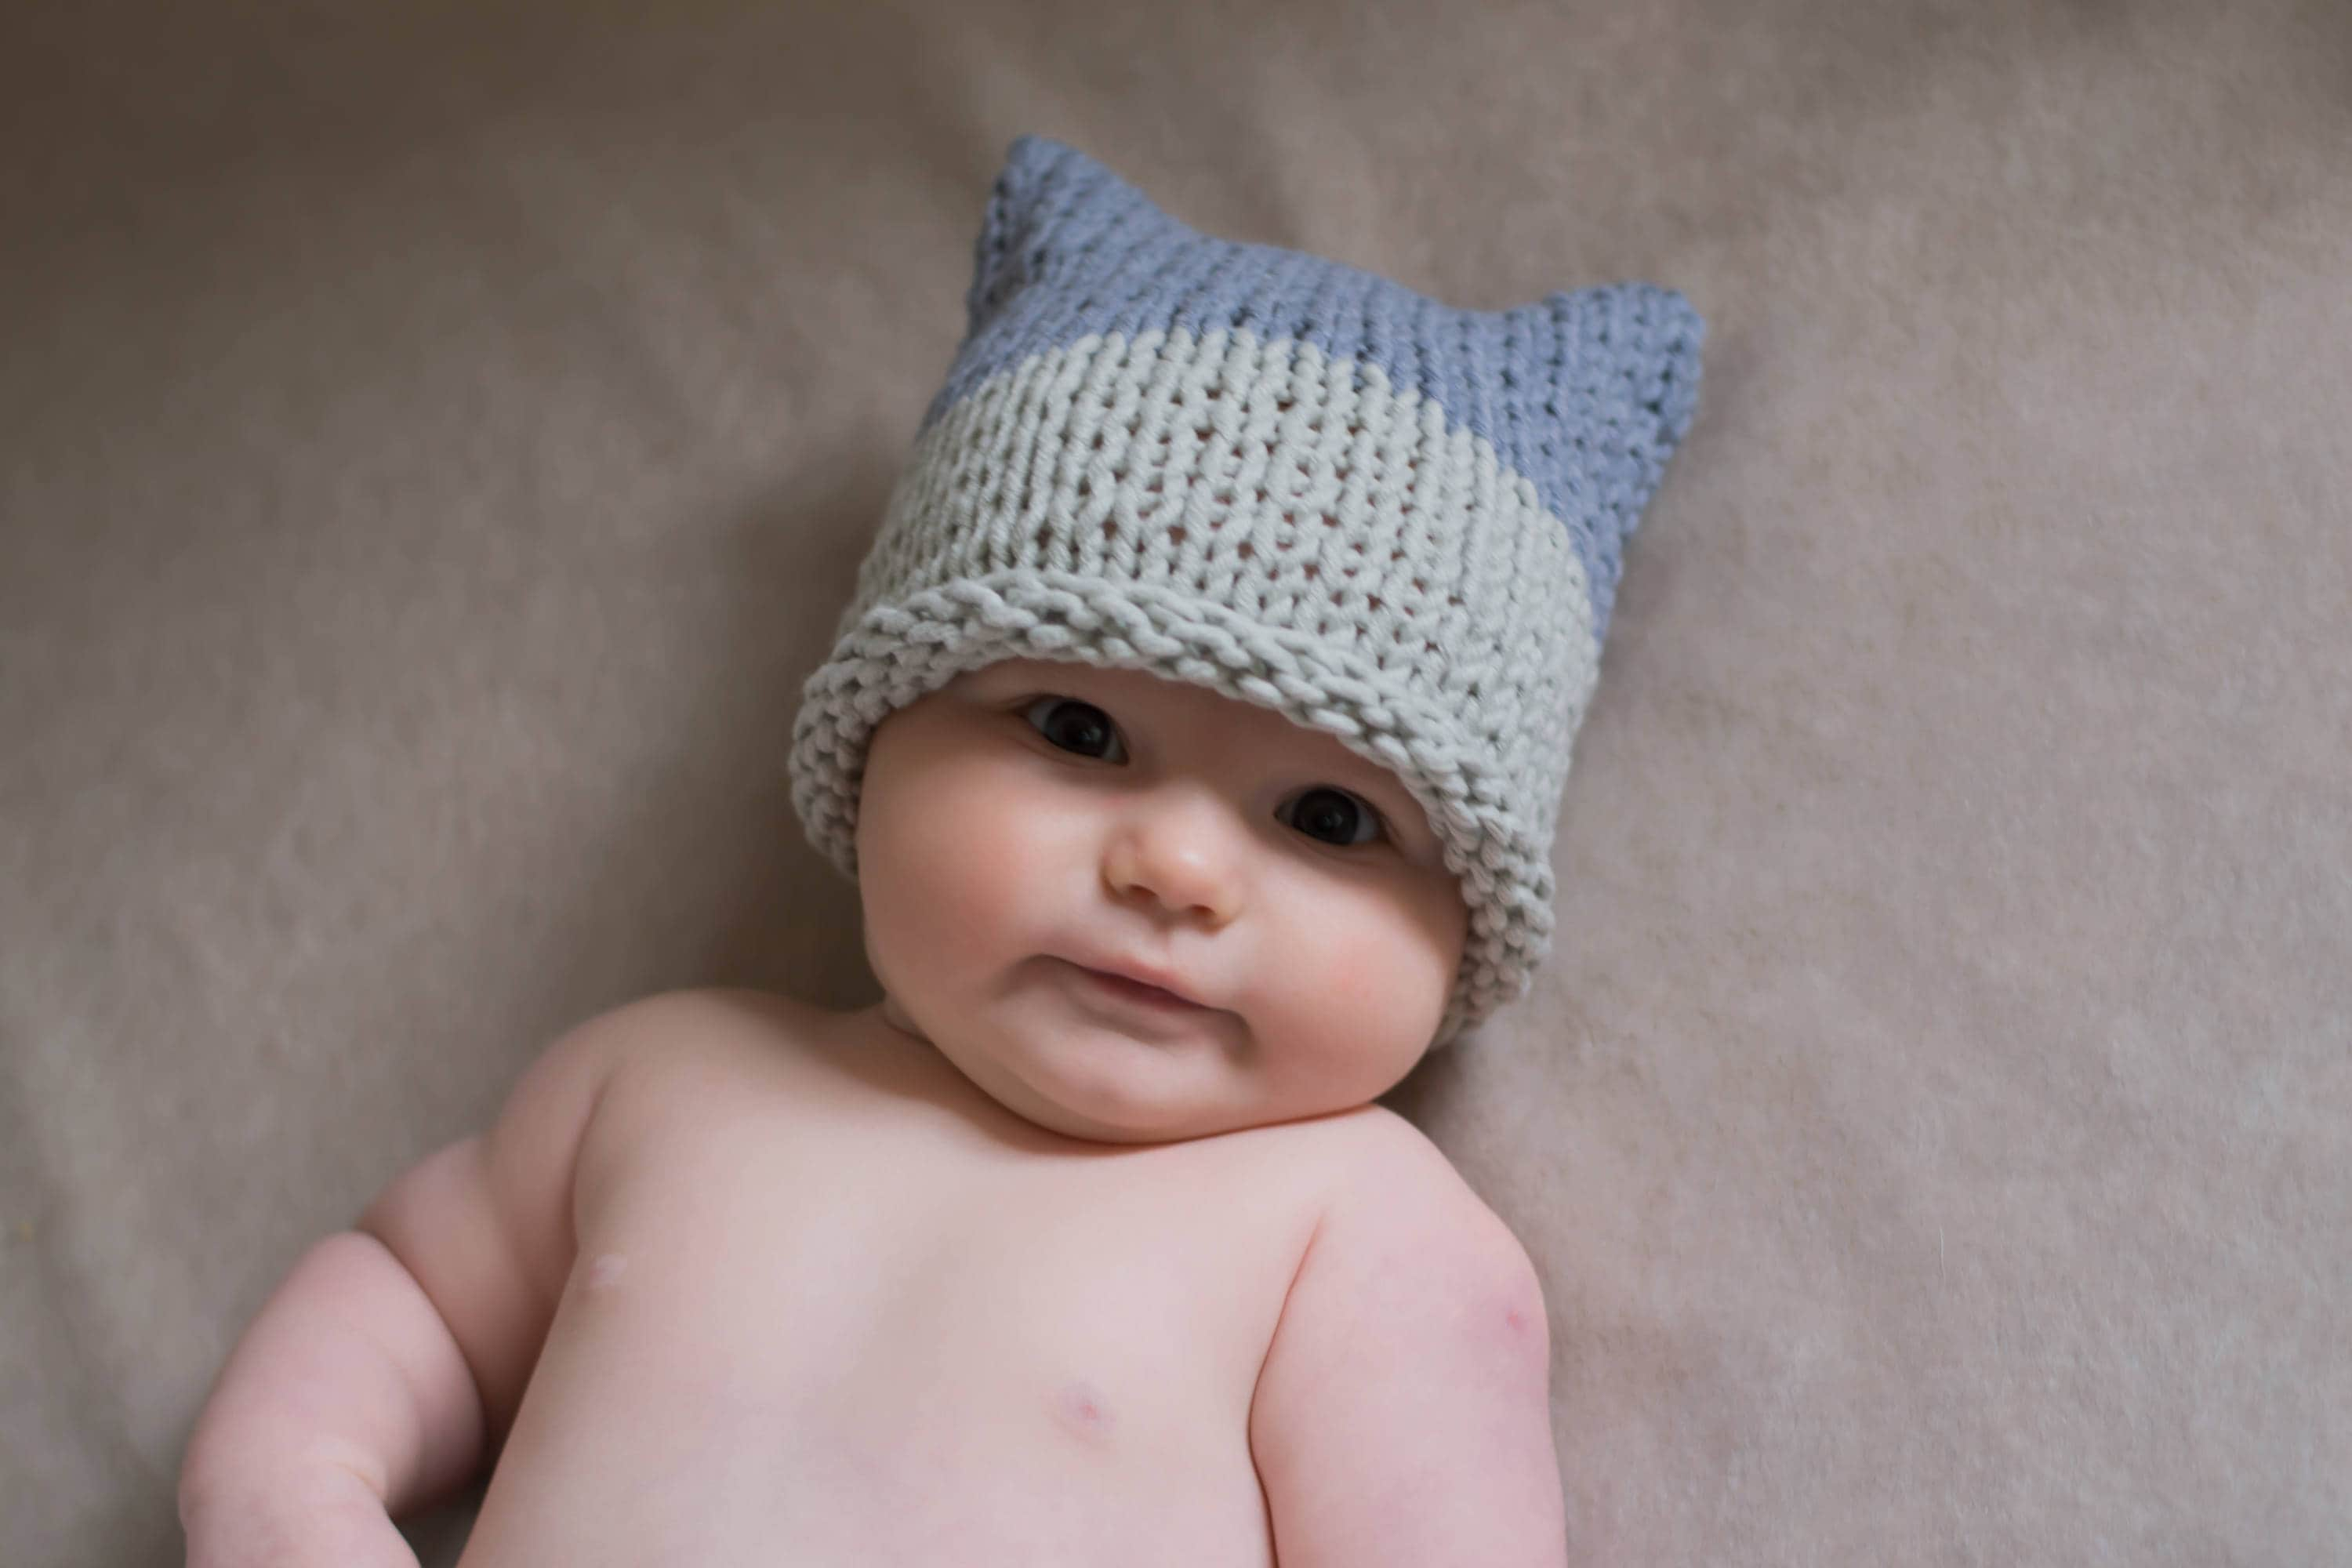 Baby pussyhat hand knitted baby hat baby knitted hat  390db28727a